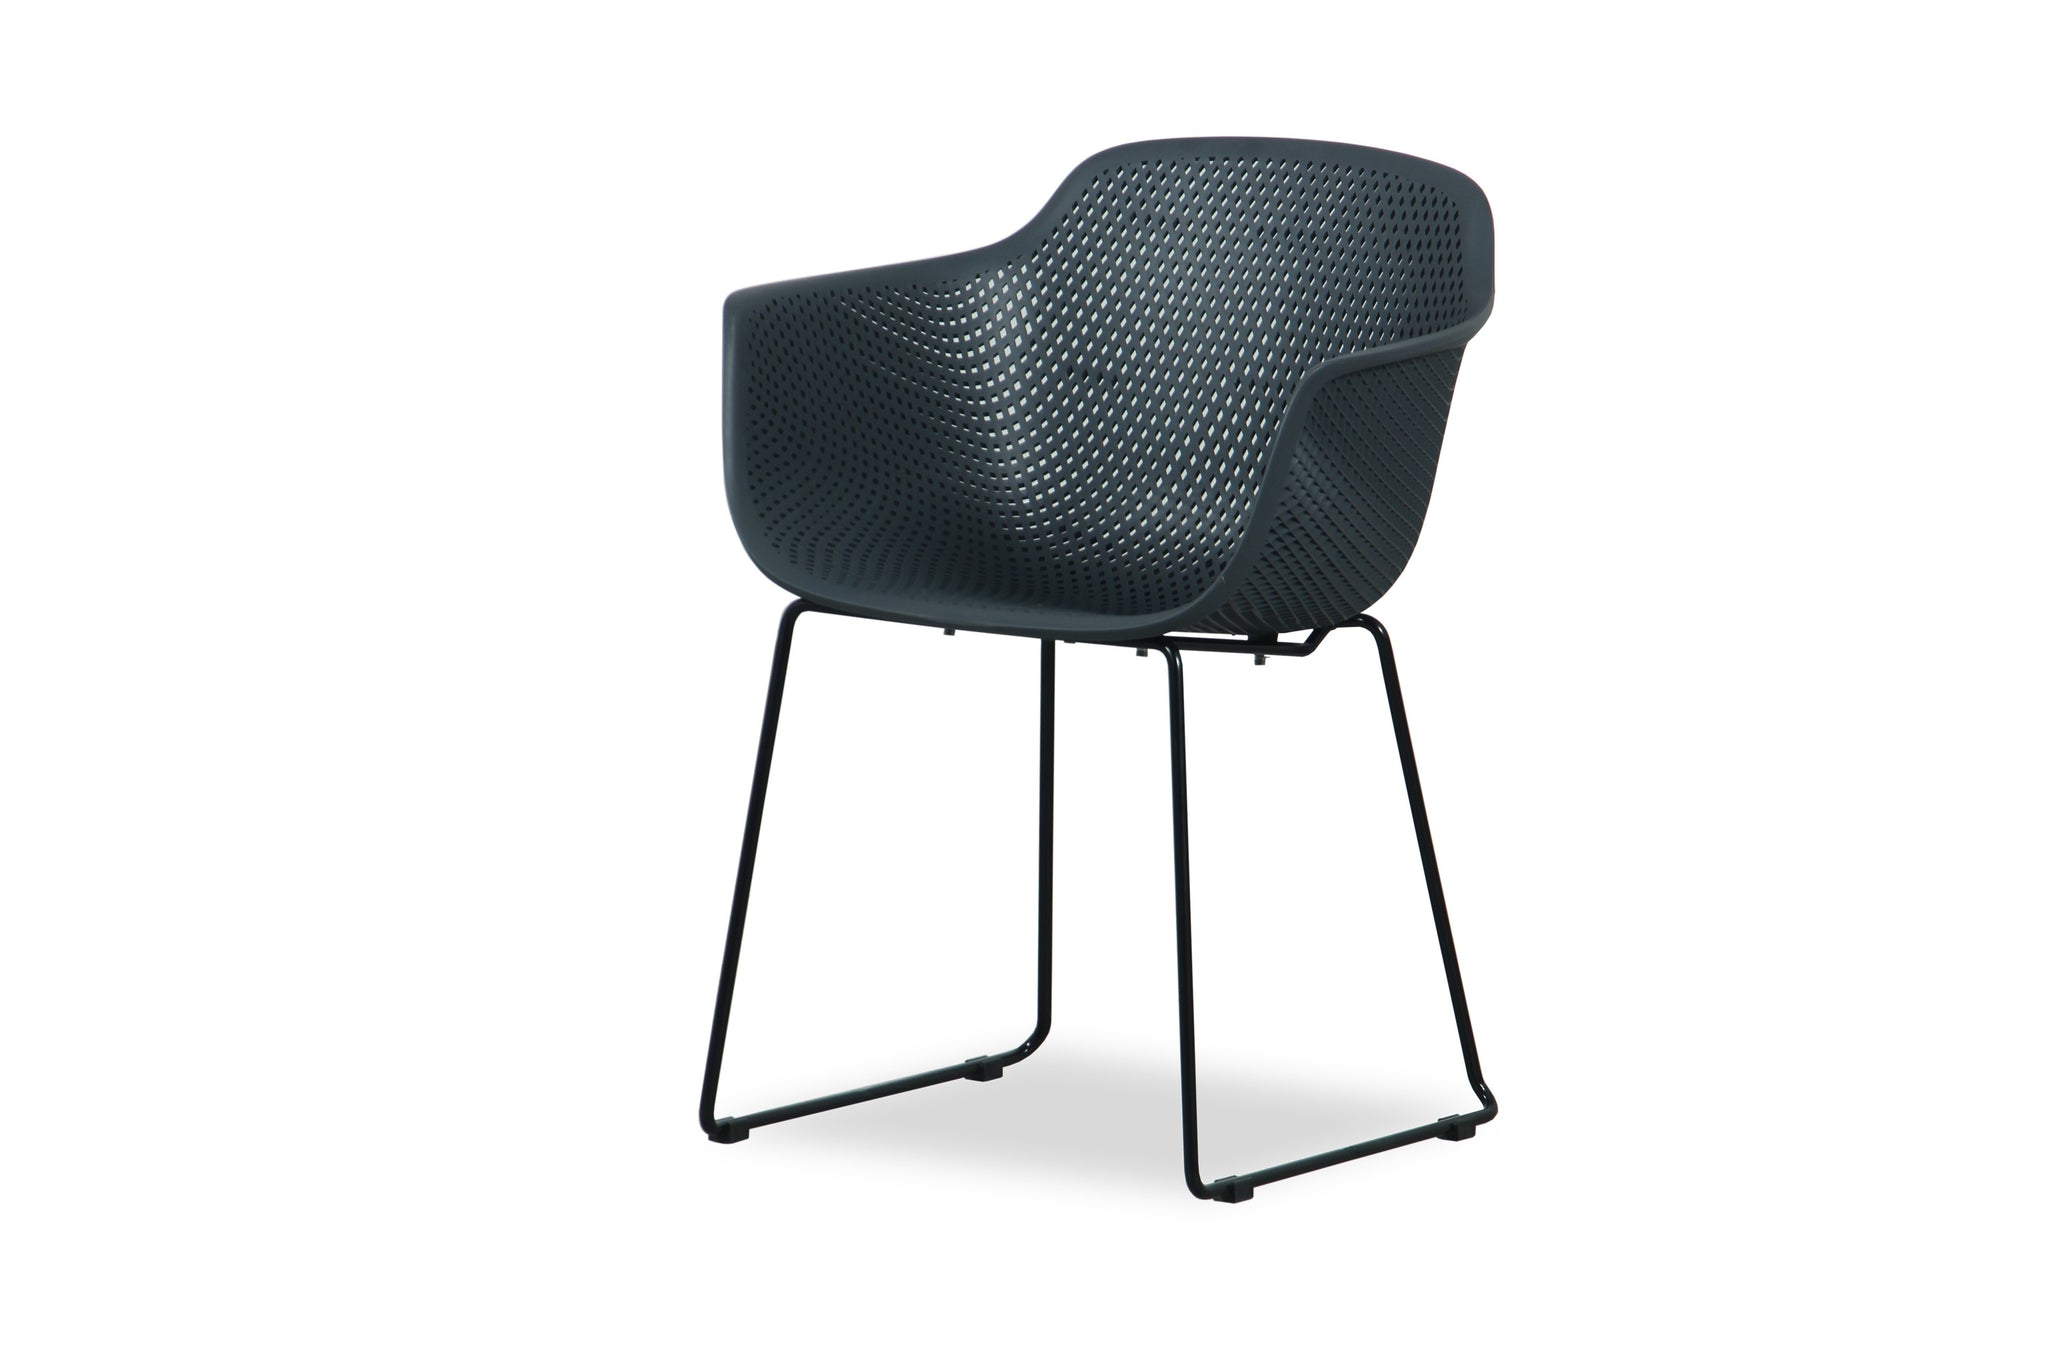 Cove Outdoor Dining Chair - Gunmetal